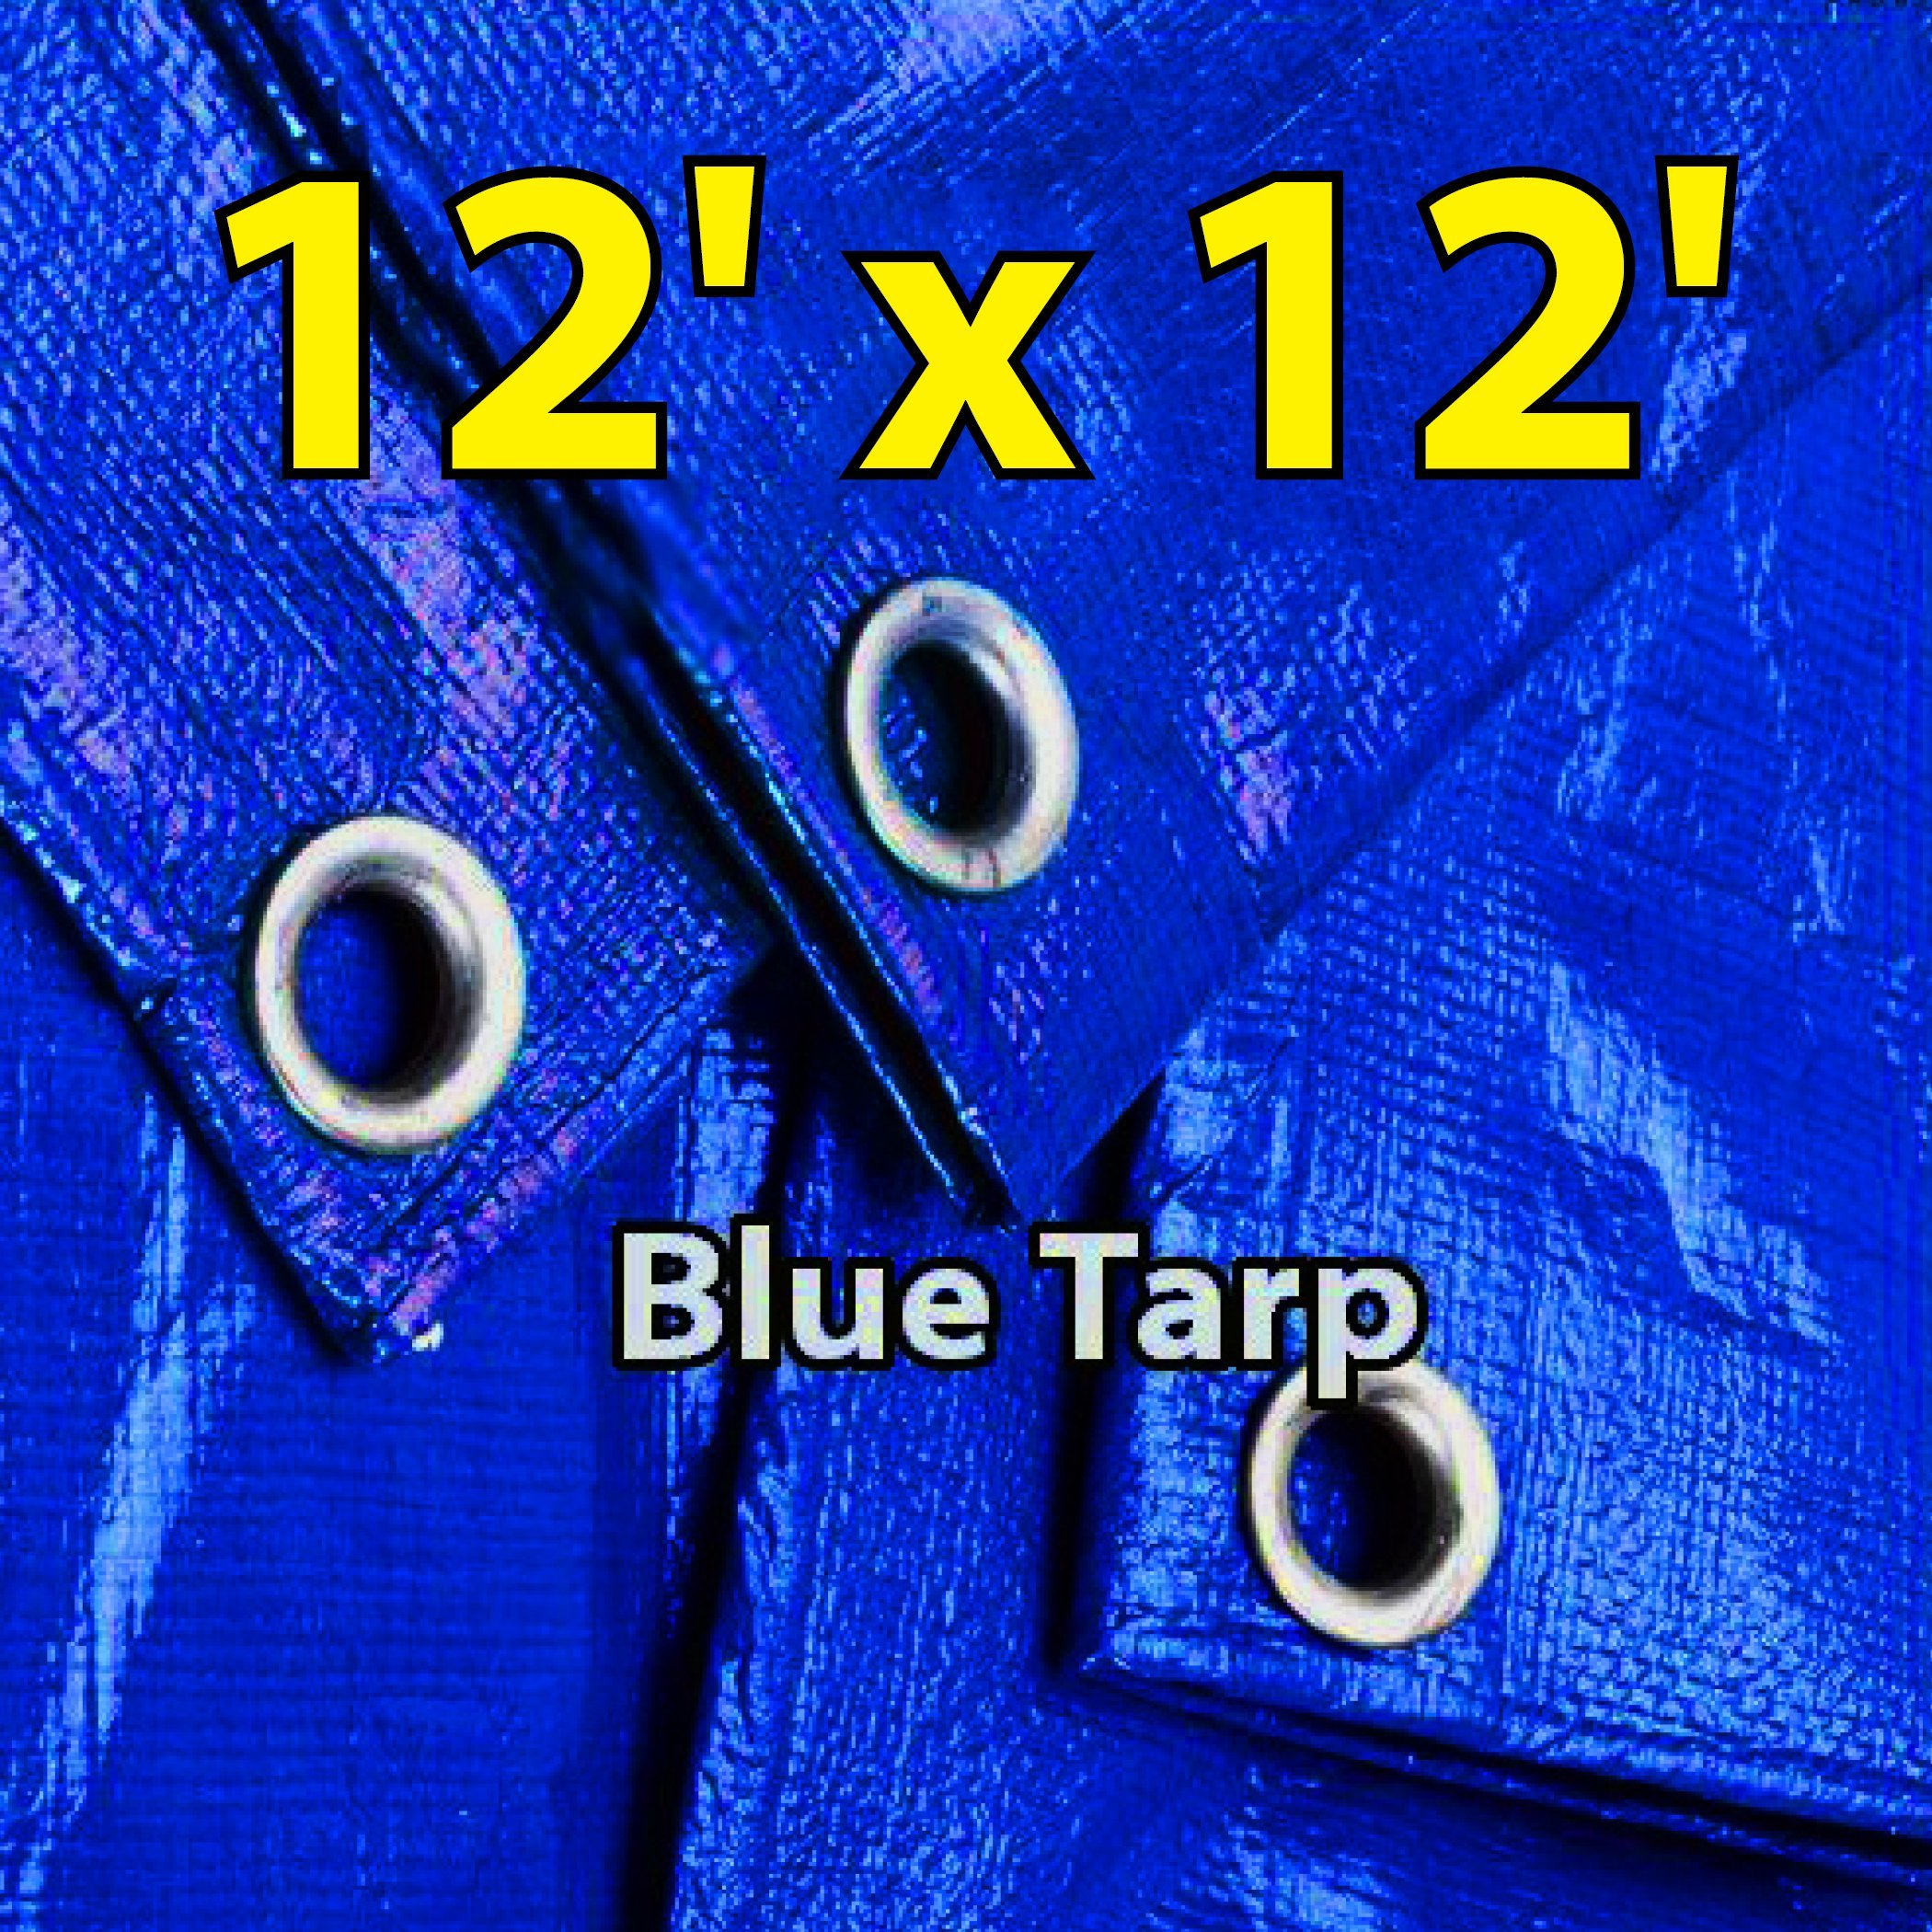 12'x12' Blue Multi-purpose 6ml Waterproof Poly Tarp Cover with Tent Shelter Camping Tarpaulin By Prime Tarps